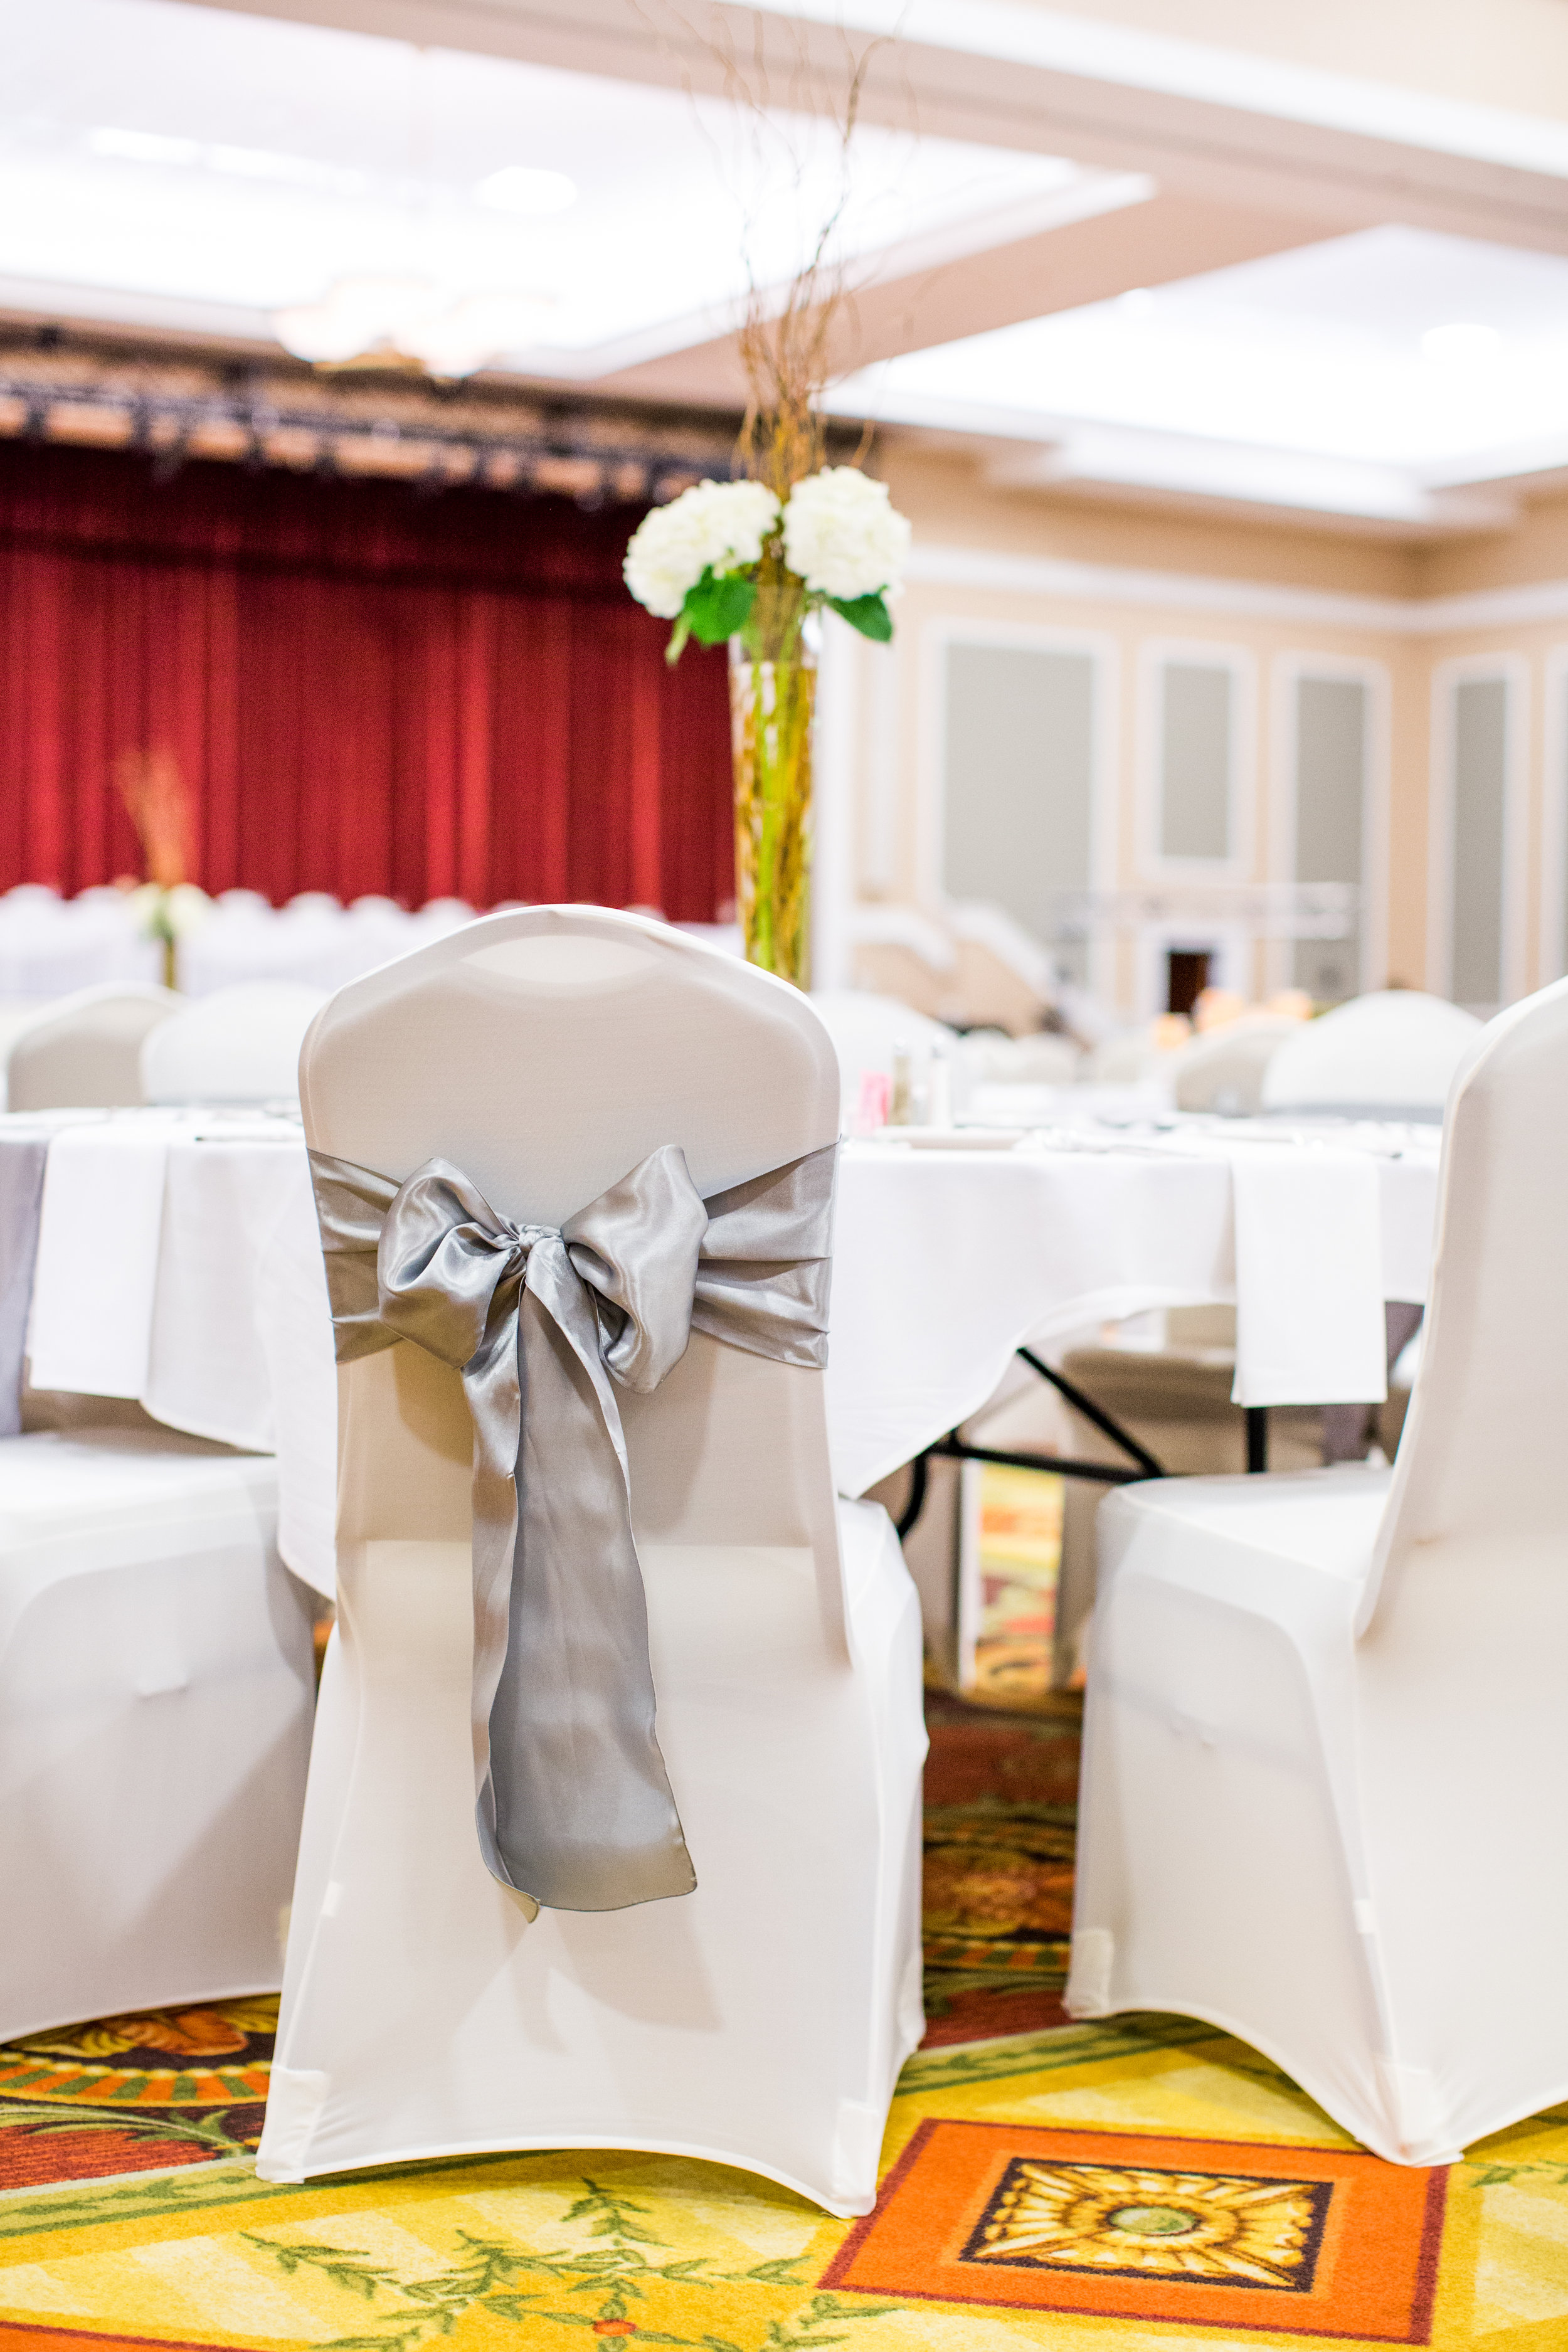 Gray sashes with white chair covers